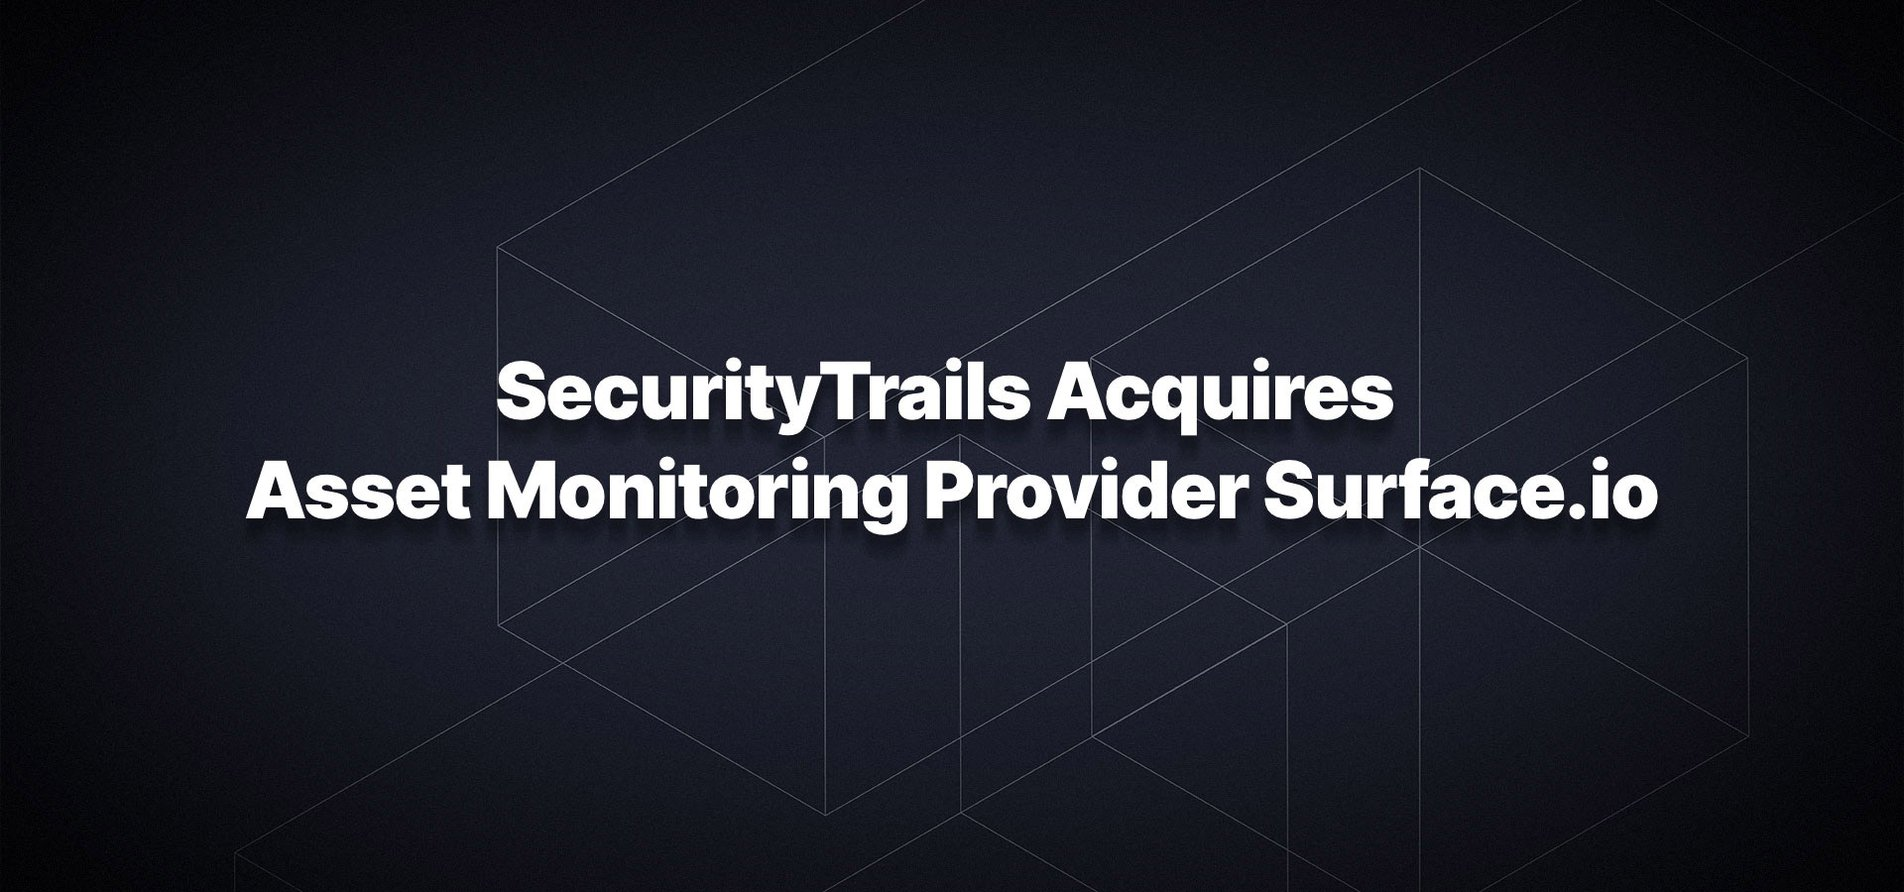 SecurityTrails Acquires Asset Monitoring Provider Surface.io.